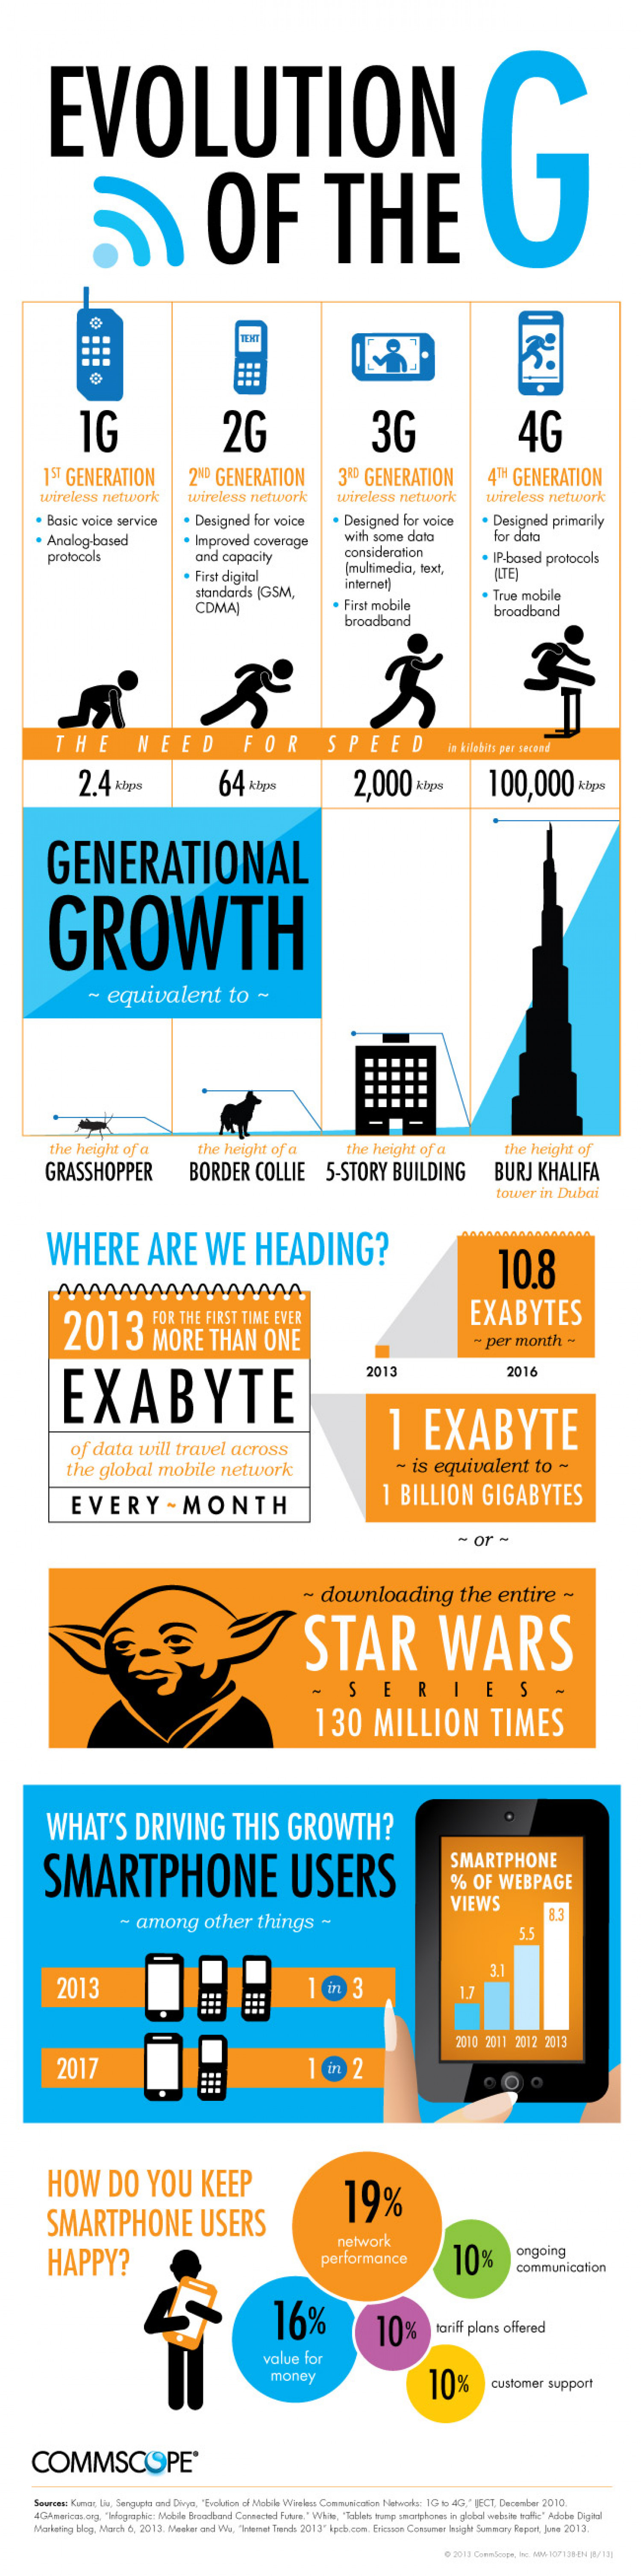 The Evolution of the G Infographic